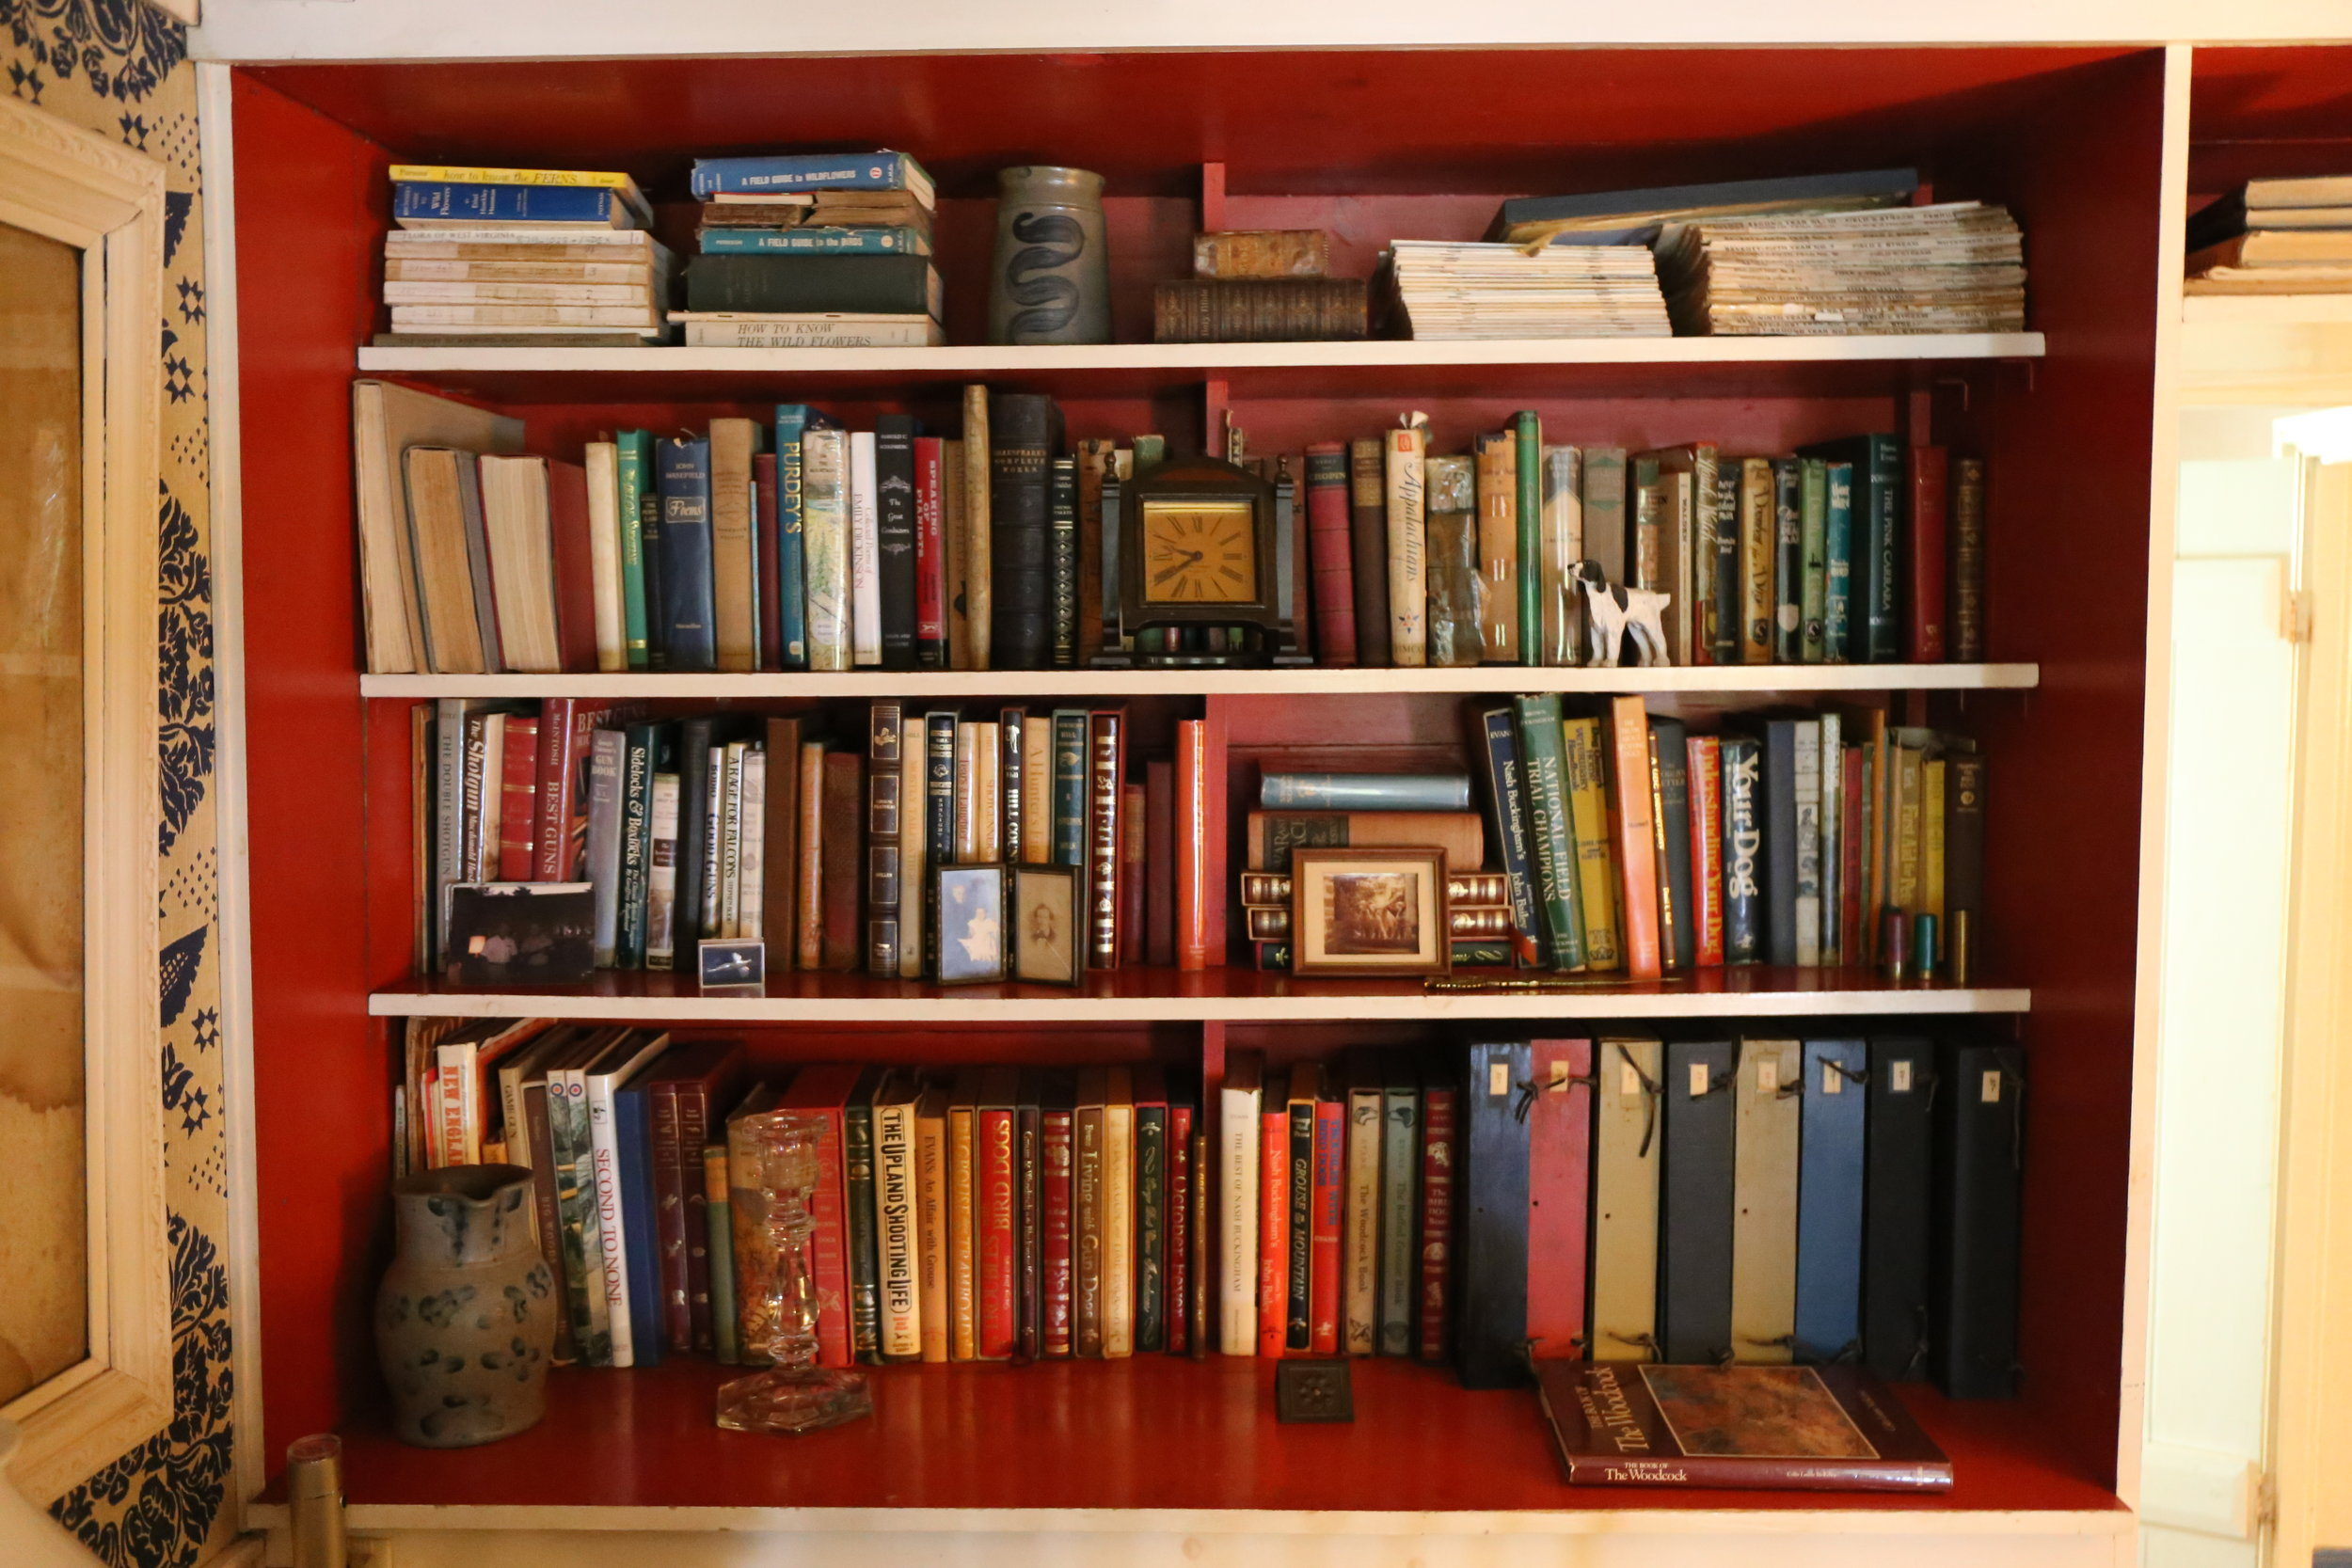 George's book collection.